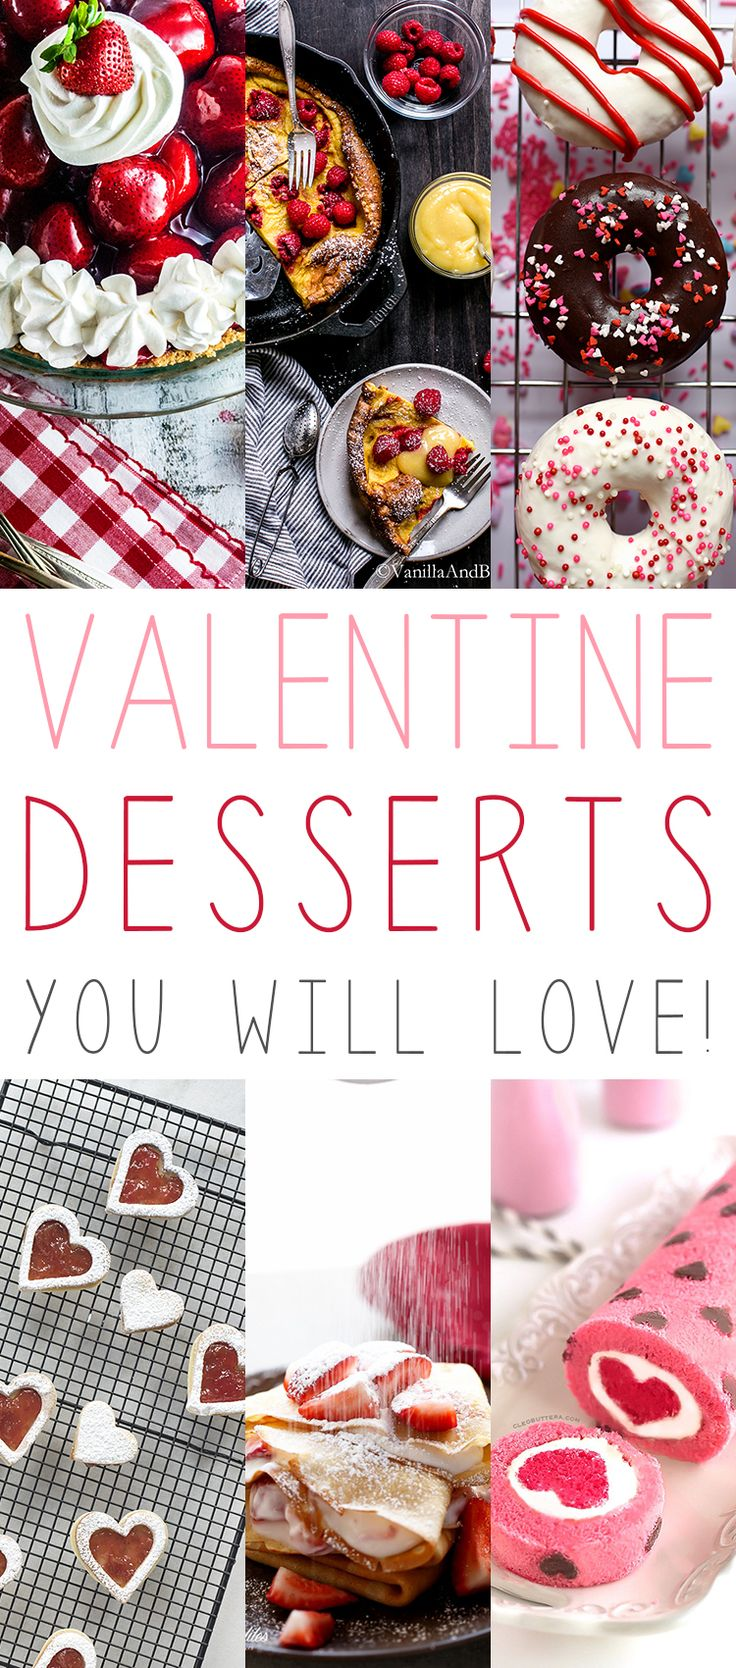 Over 100 Sweets For The Sweet Valentine Desserts You Will LOVE